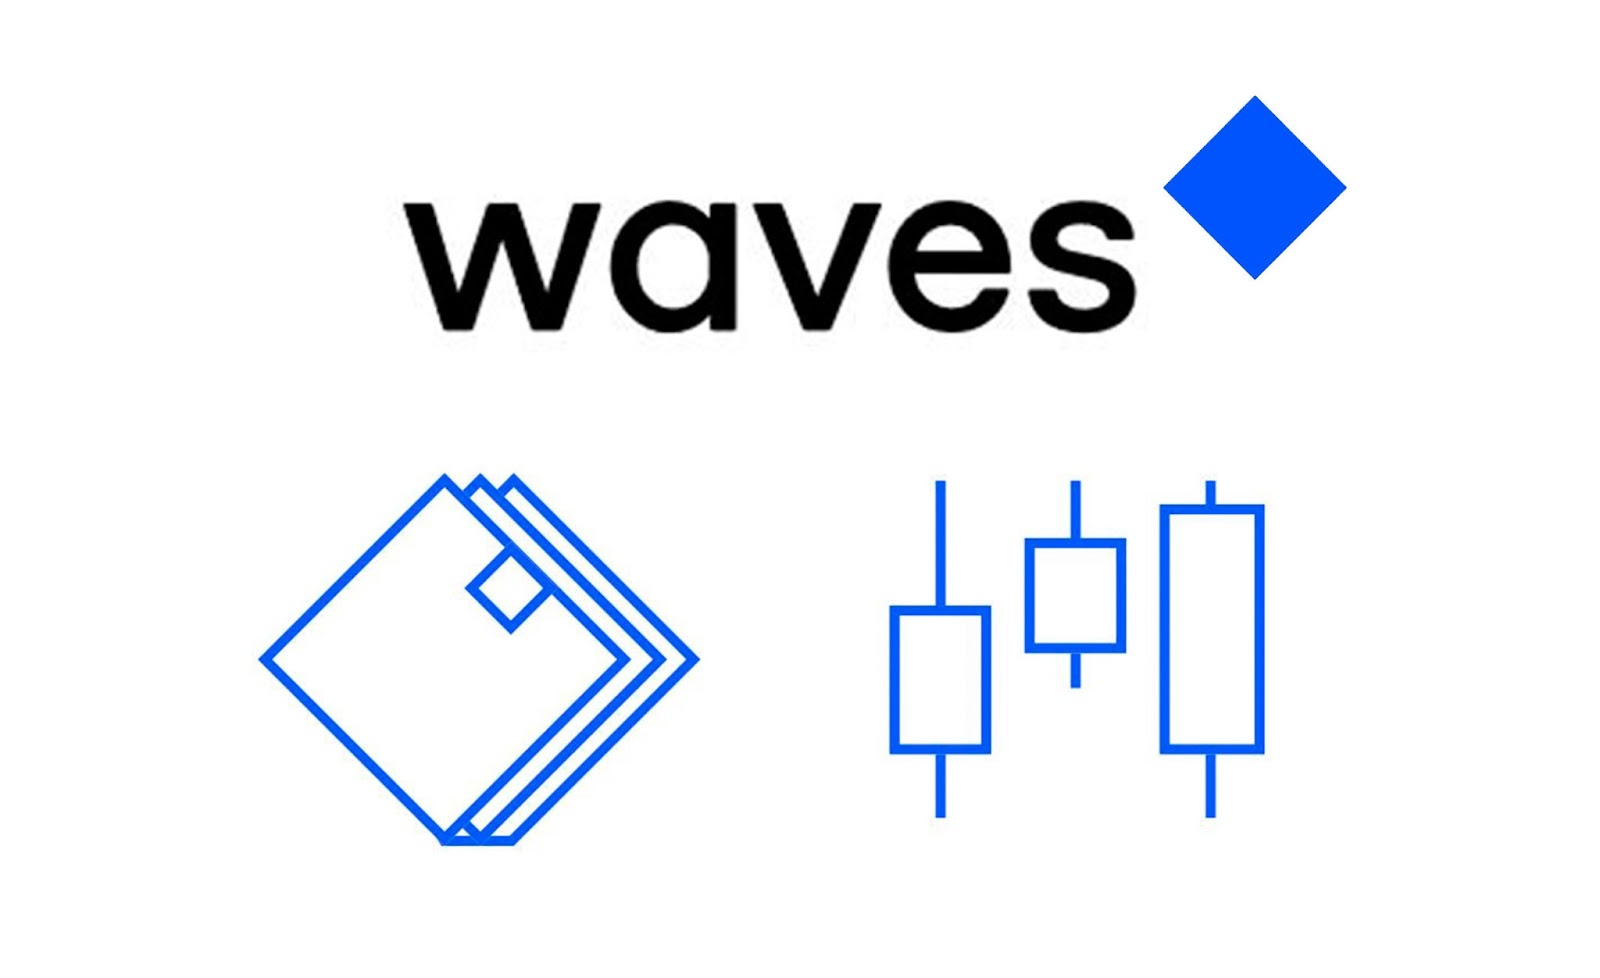 Waves Coin Price Prediction 2020